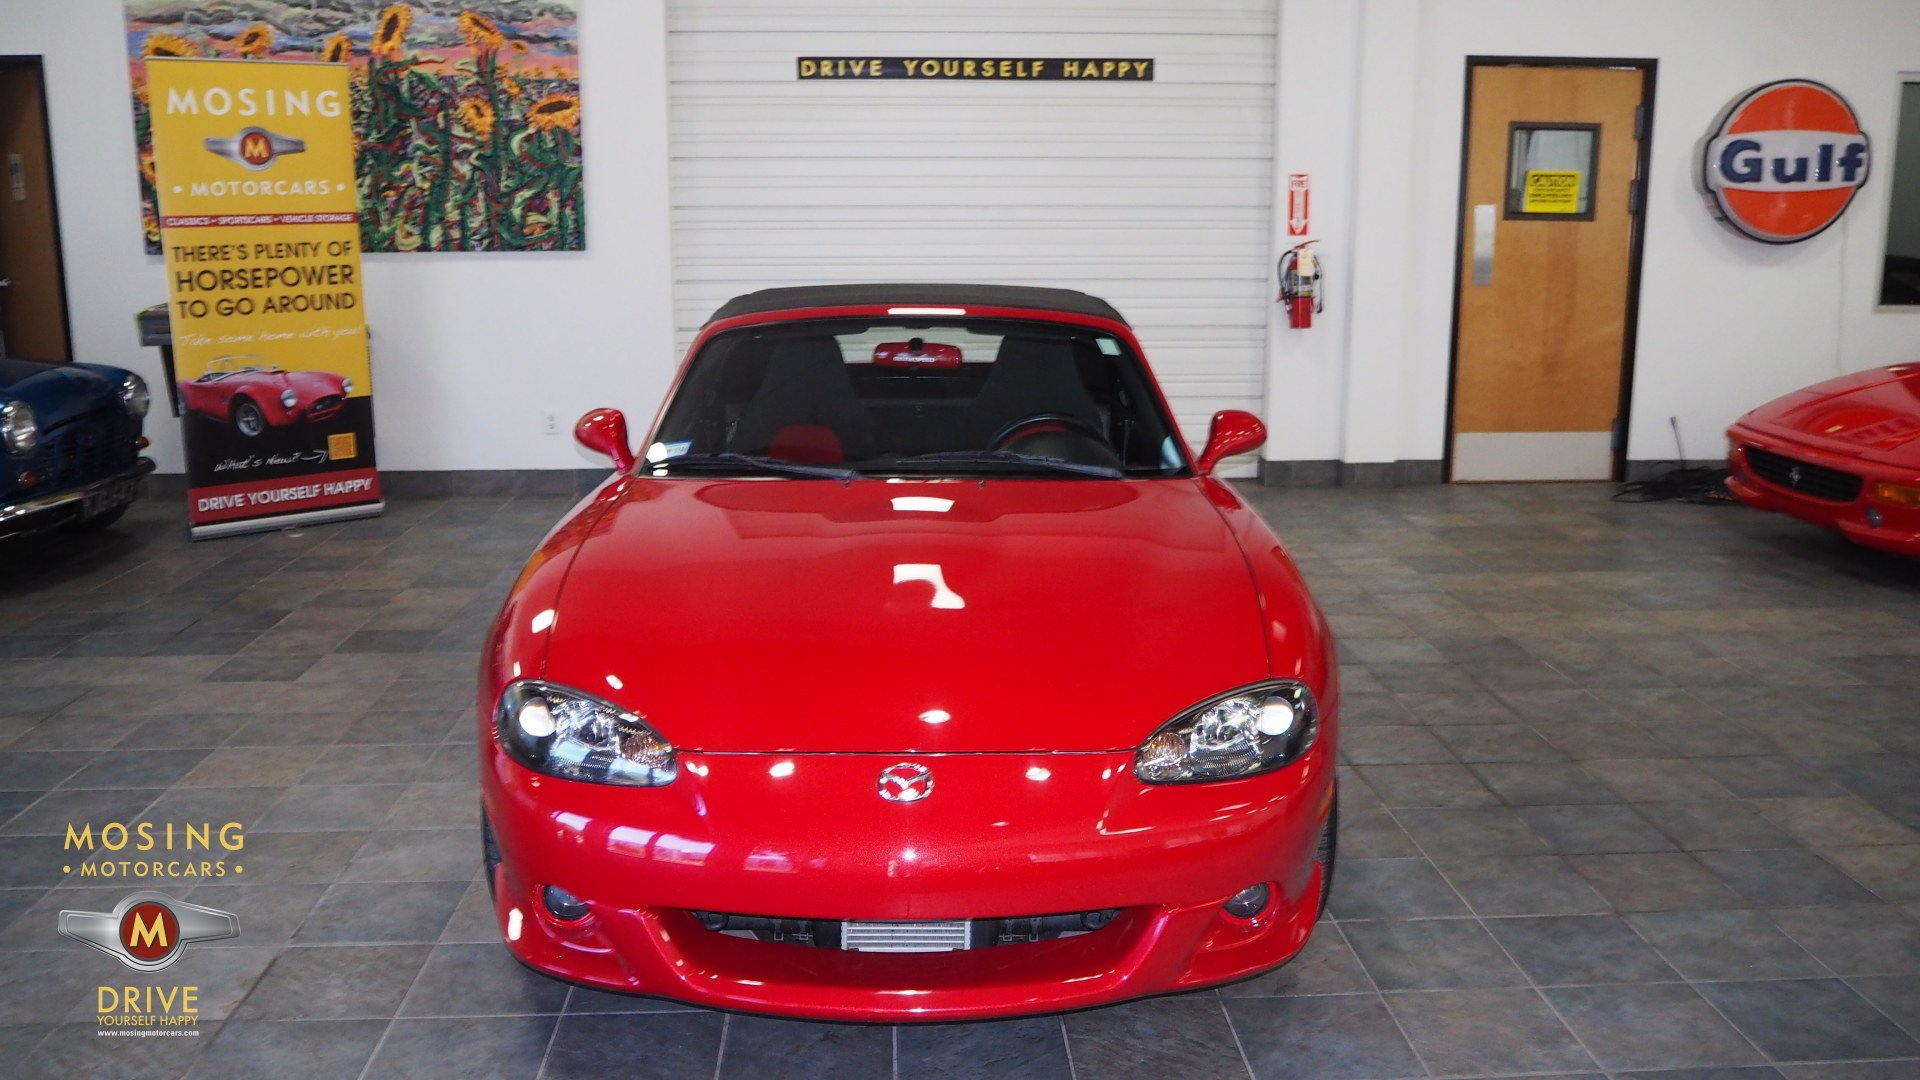 2004 Mazda MazdaSpeed Miata for sale #2691 | Motorious